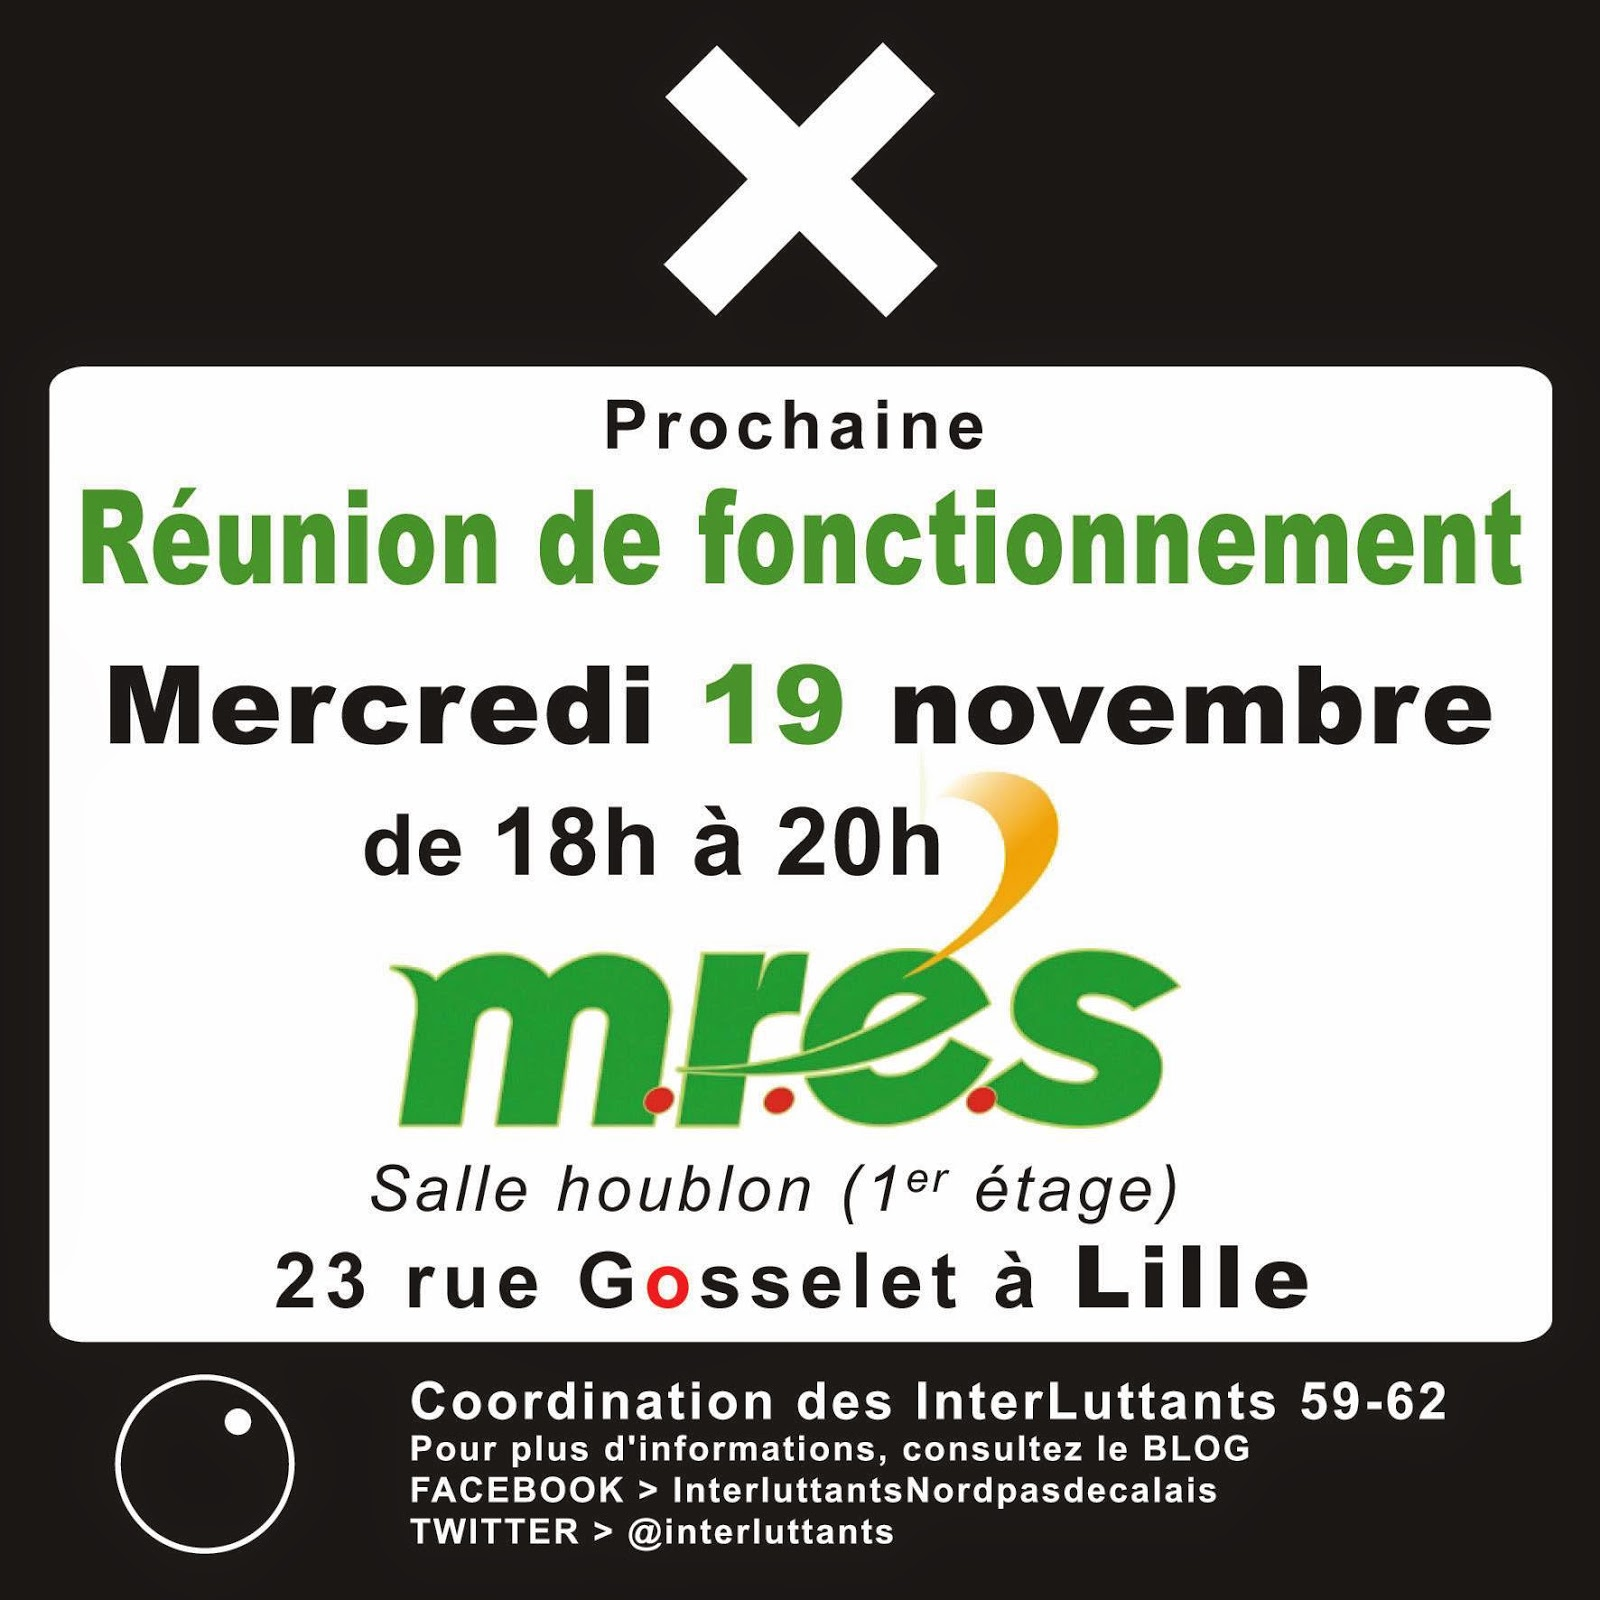 Réunion de fontionnement - Coordination interluttants 59-62 - le 19/11/14, de 18h à 20h - Mres